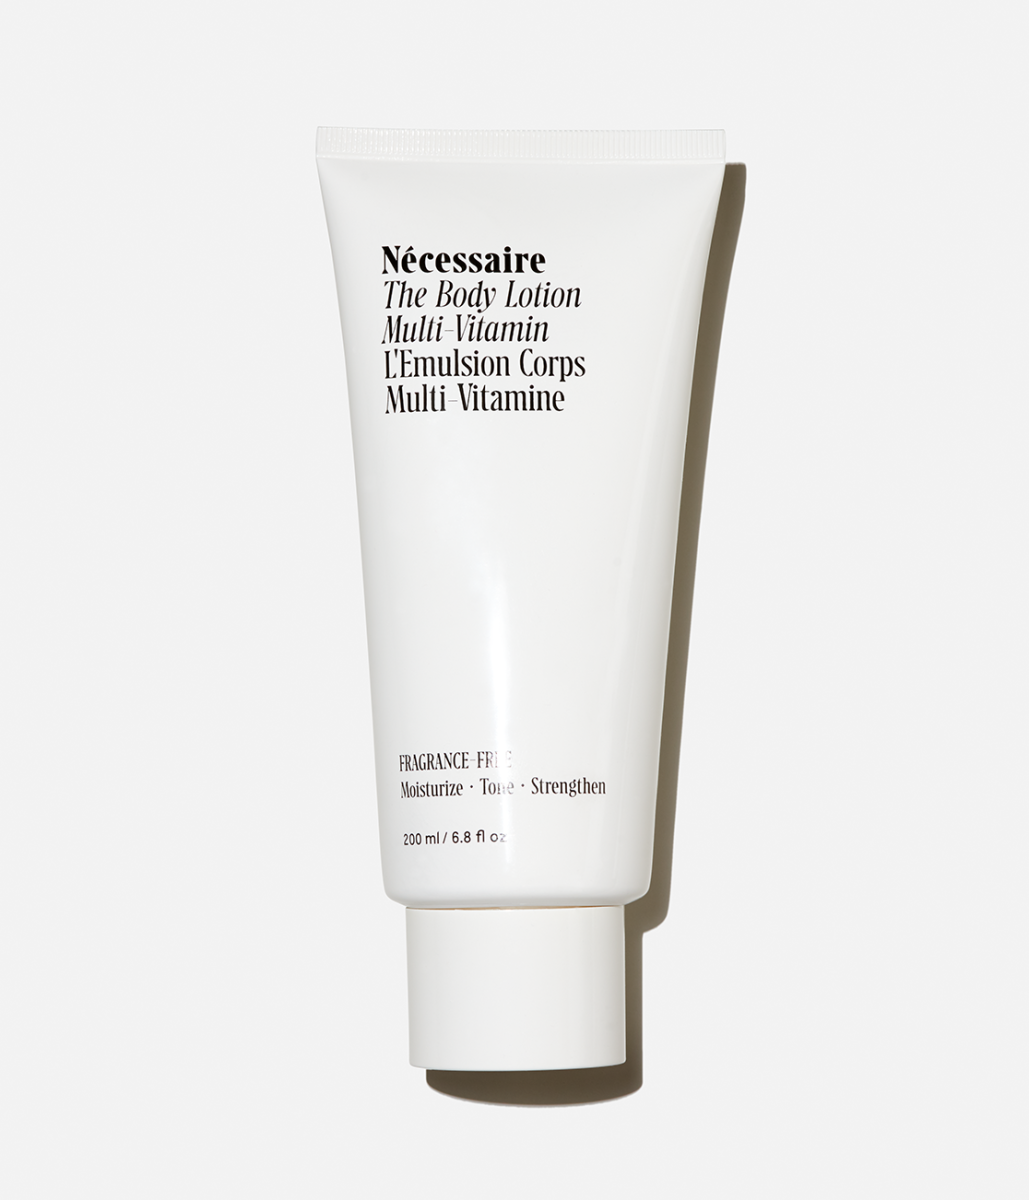 Nécessaire The Body Lotion, $25, available here. Photo: Courtesy of Nécessaire